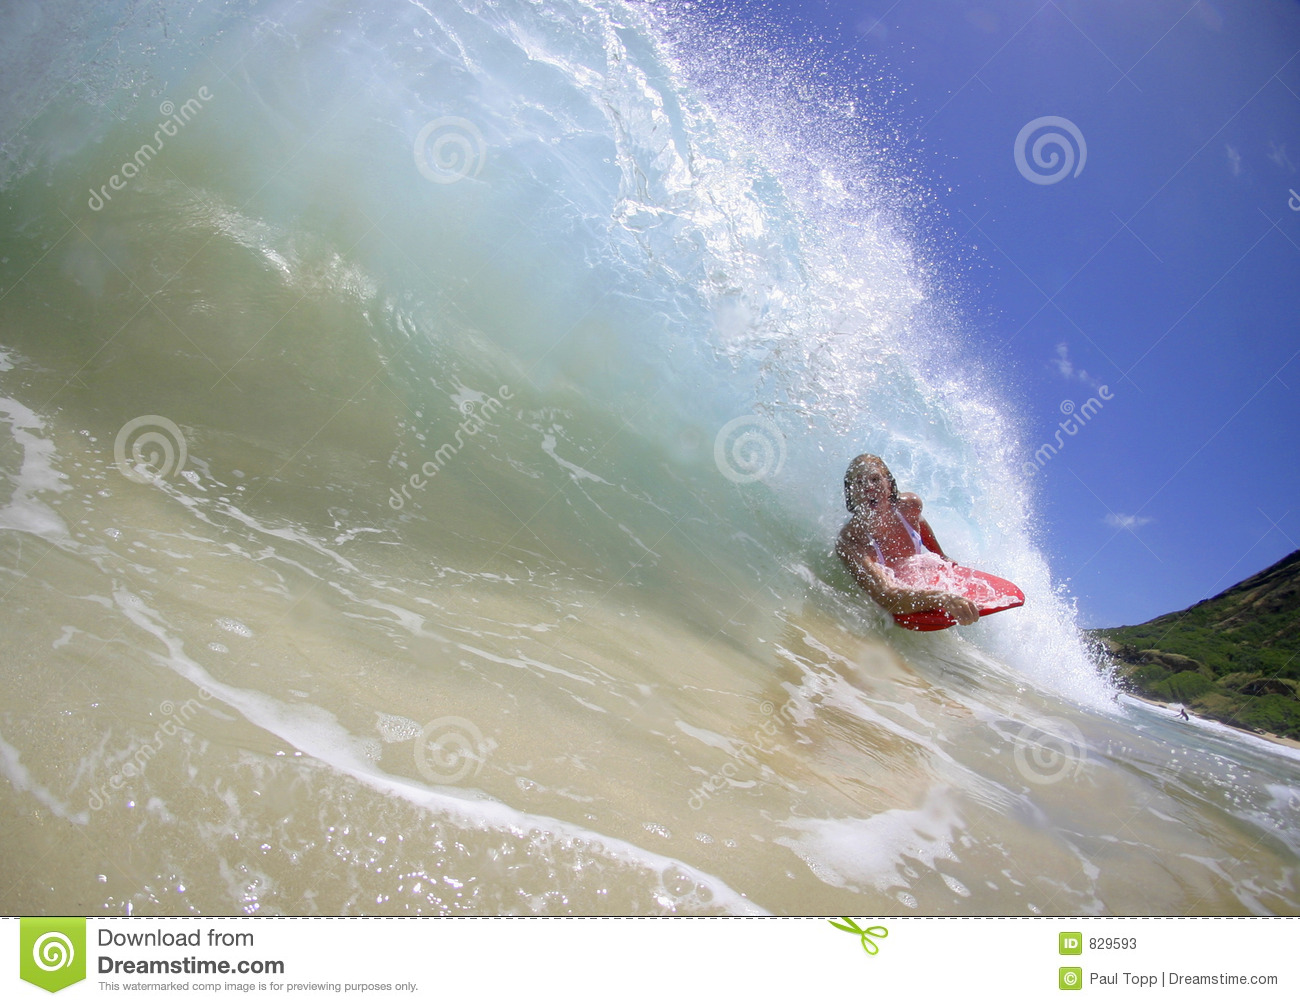 Girl in the Tube of a Surfing Wave